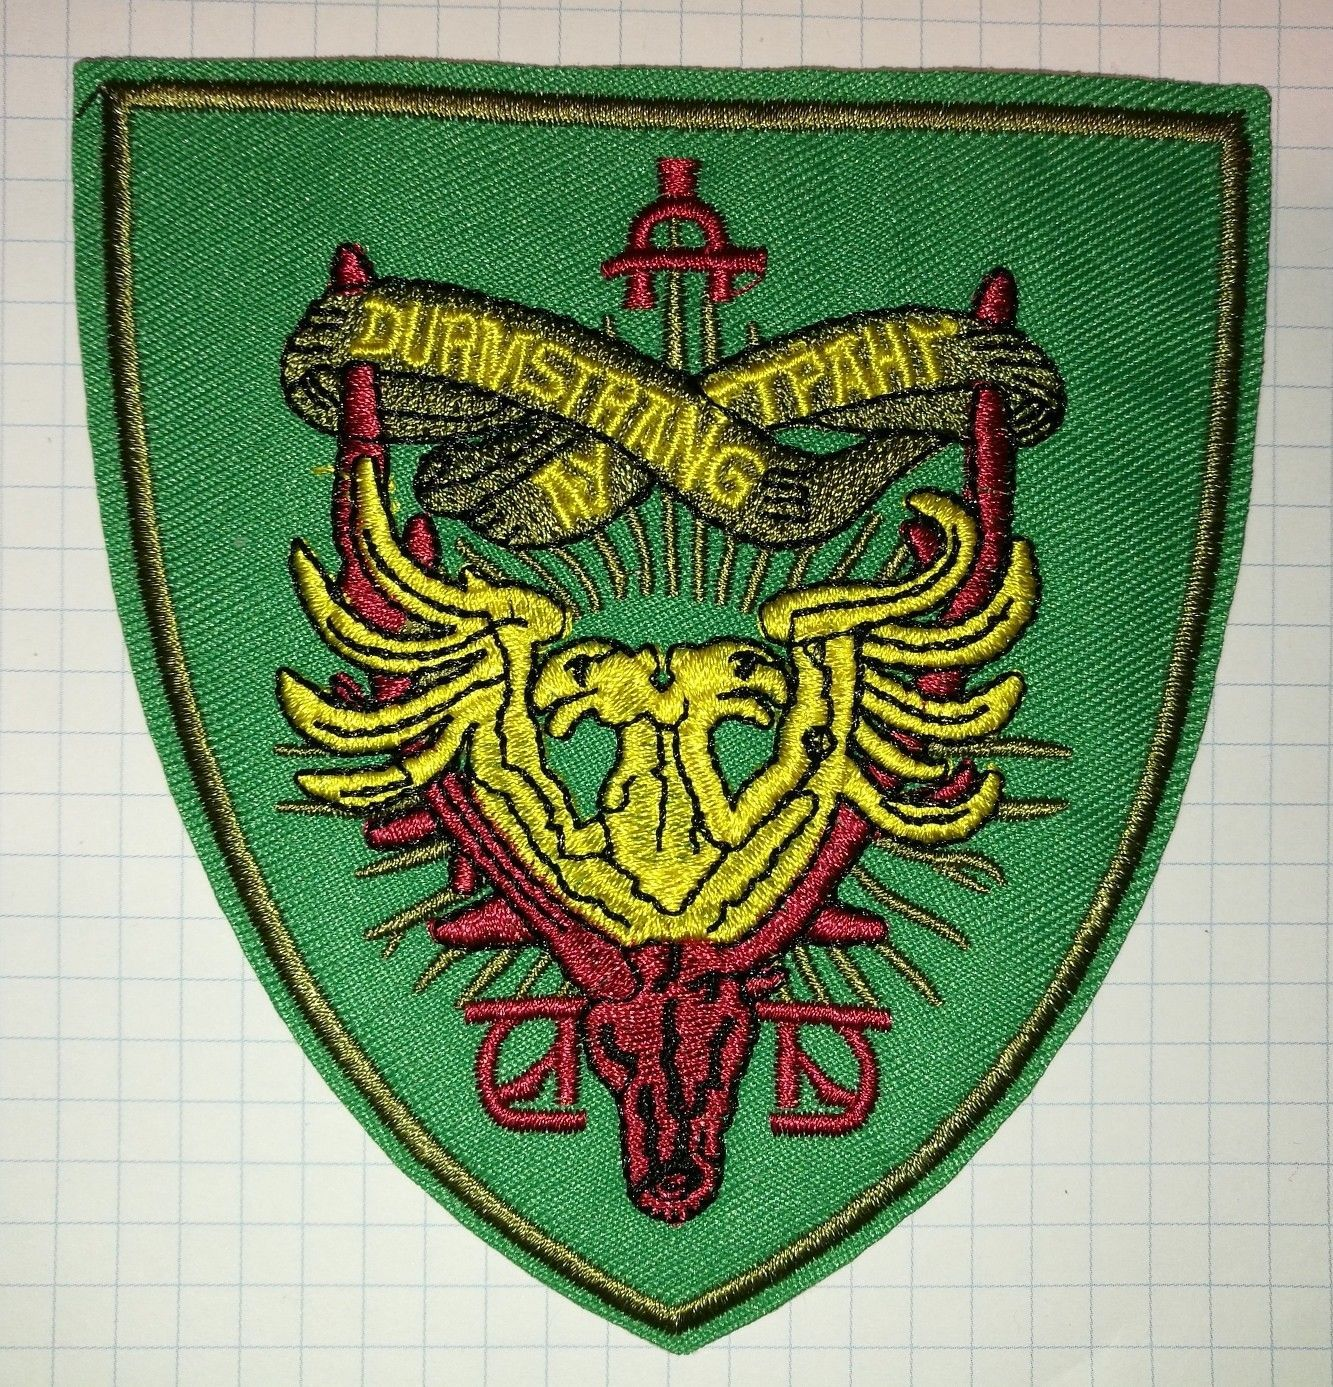 Harry Potter Durmstrang Embroidered Cloth And 50 Similar Items 10 reasons dumbledore was the worst headmaster of hogwarts. bonanza